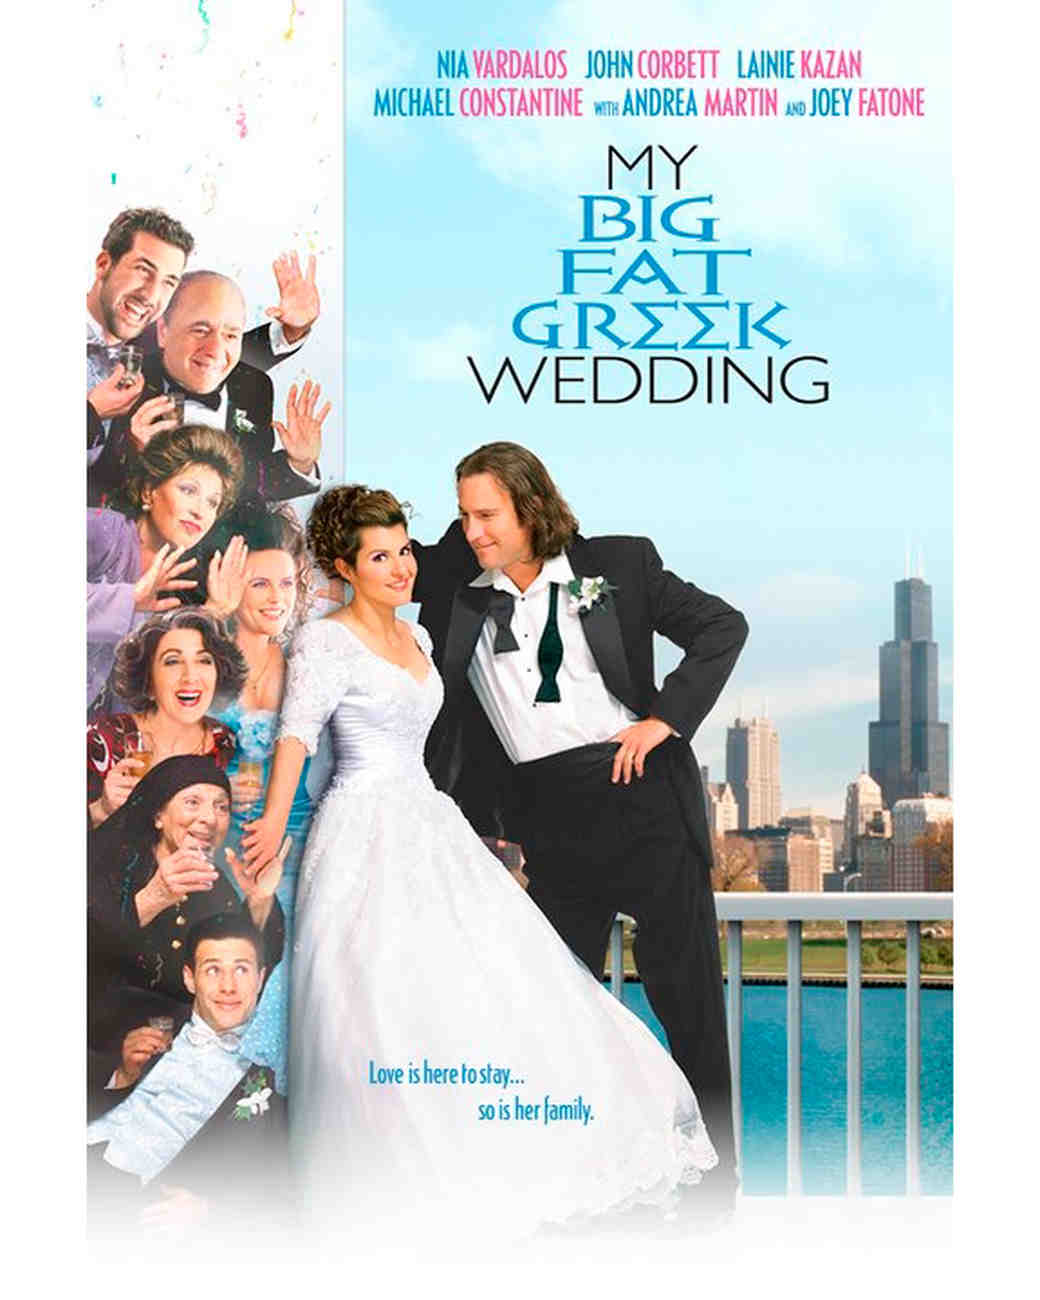 film techniques of 'my big fat Essay about film techniques of 'my big fat greek wedding' film techniques of ' my big fat greek wedding '  at the beginning of the film, she is very upset because she was different and of different culture to the kids in her school, but then the movie gradually shows that it is actually a positive because that is what ian liked.